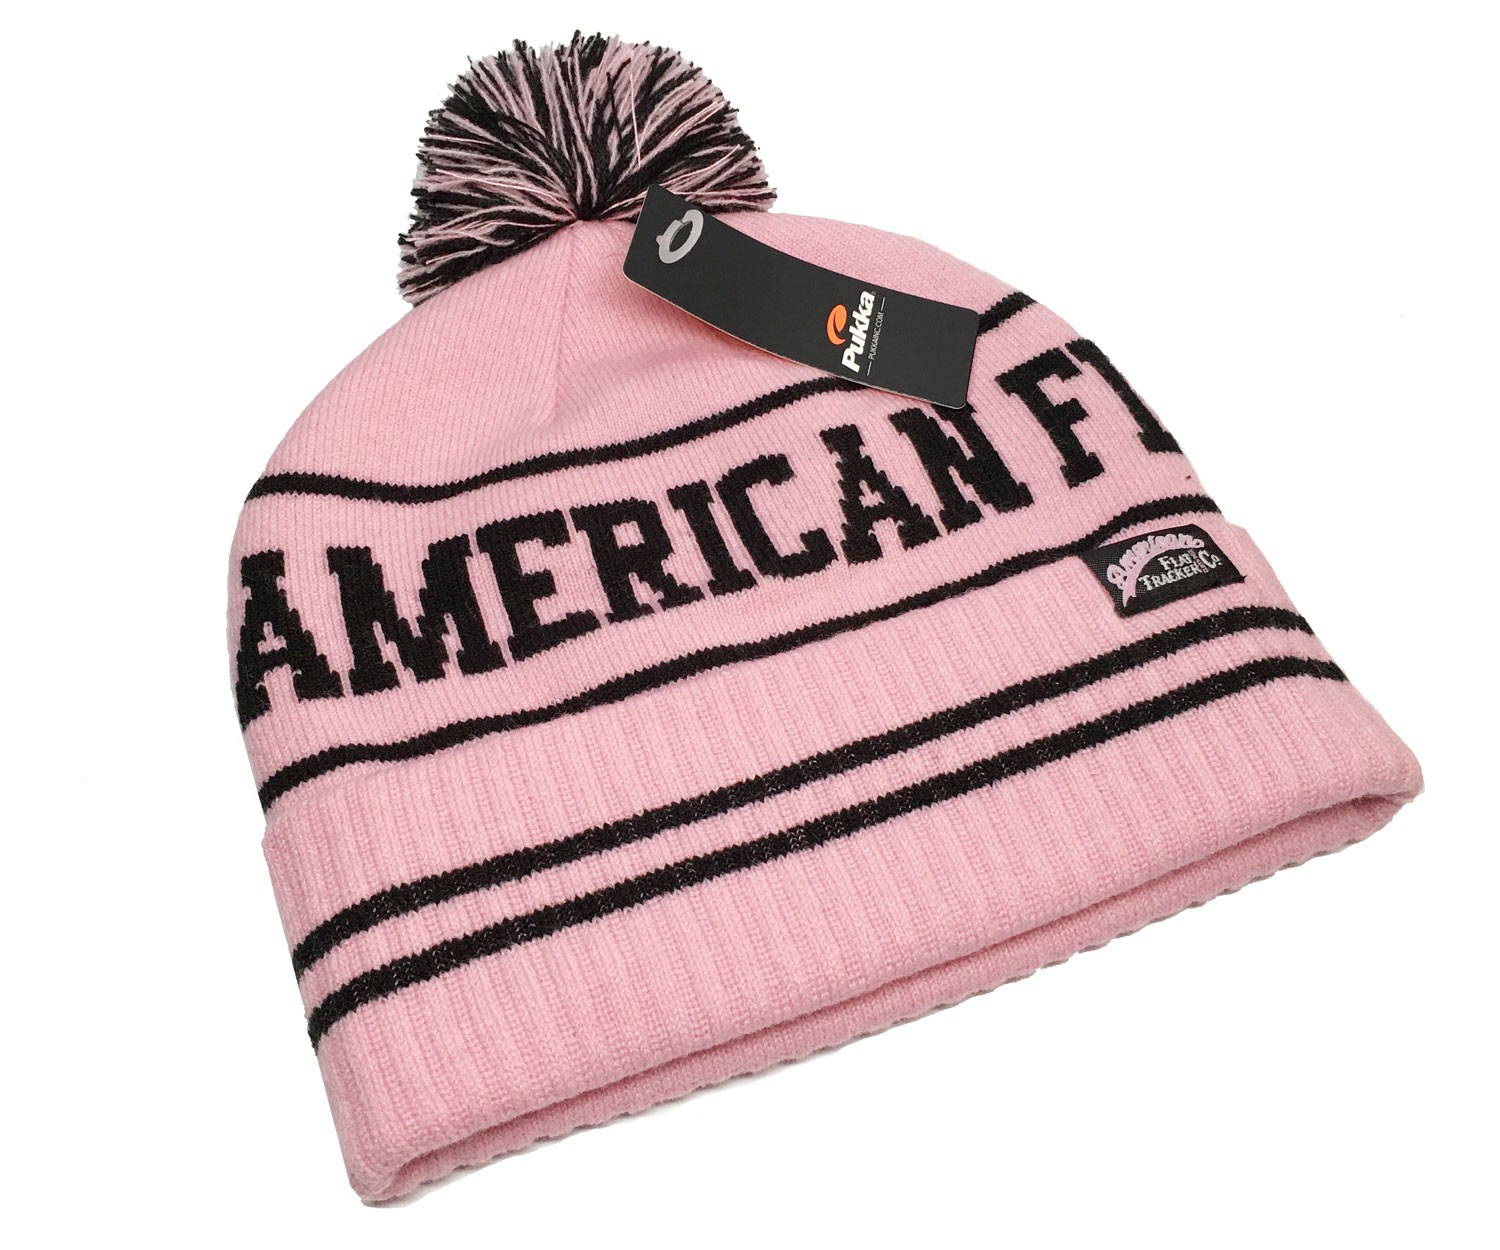 AMERICAN FLAT TRACKER KNIT CAP - PINK - !! SALE !! 67 % OFF